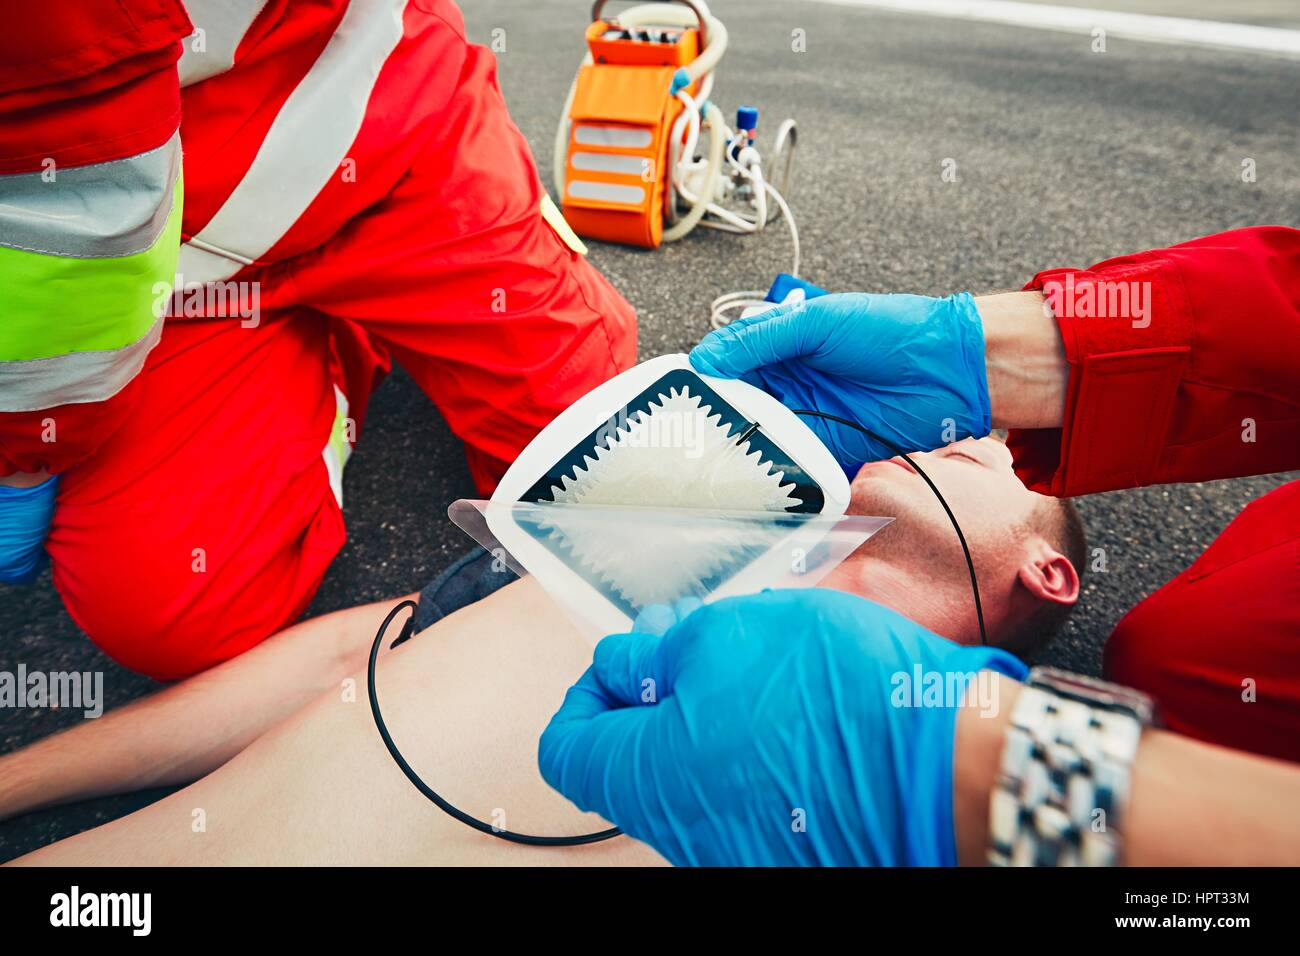 Electrodes of the defibrillator. Rescue team (doctor and a paramedic) resuscitating the man on the street. - Stock Image